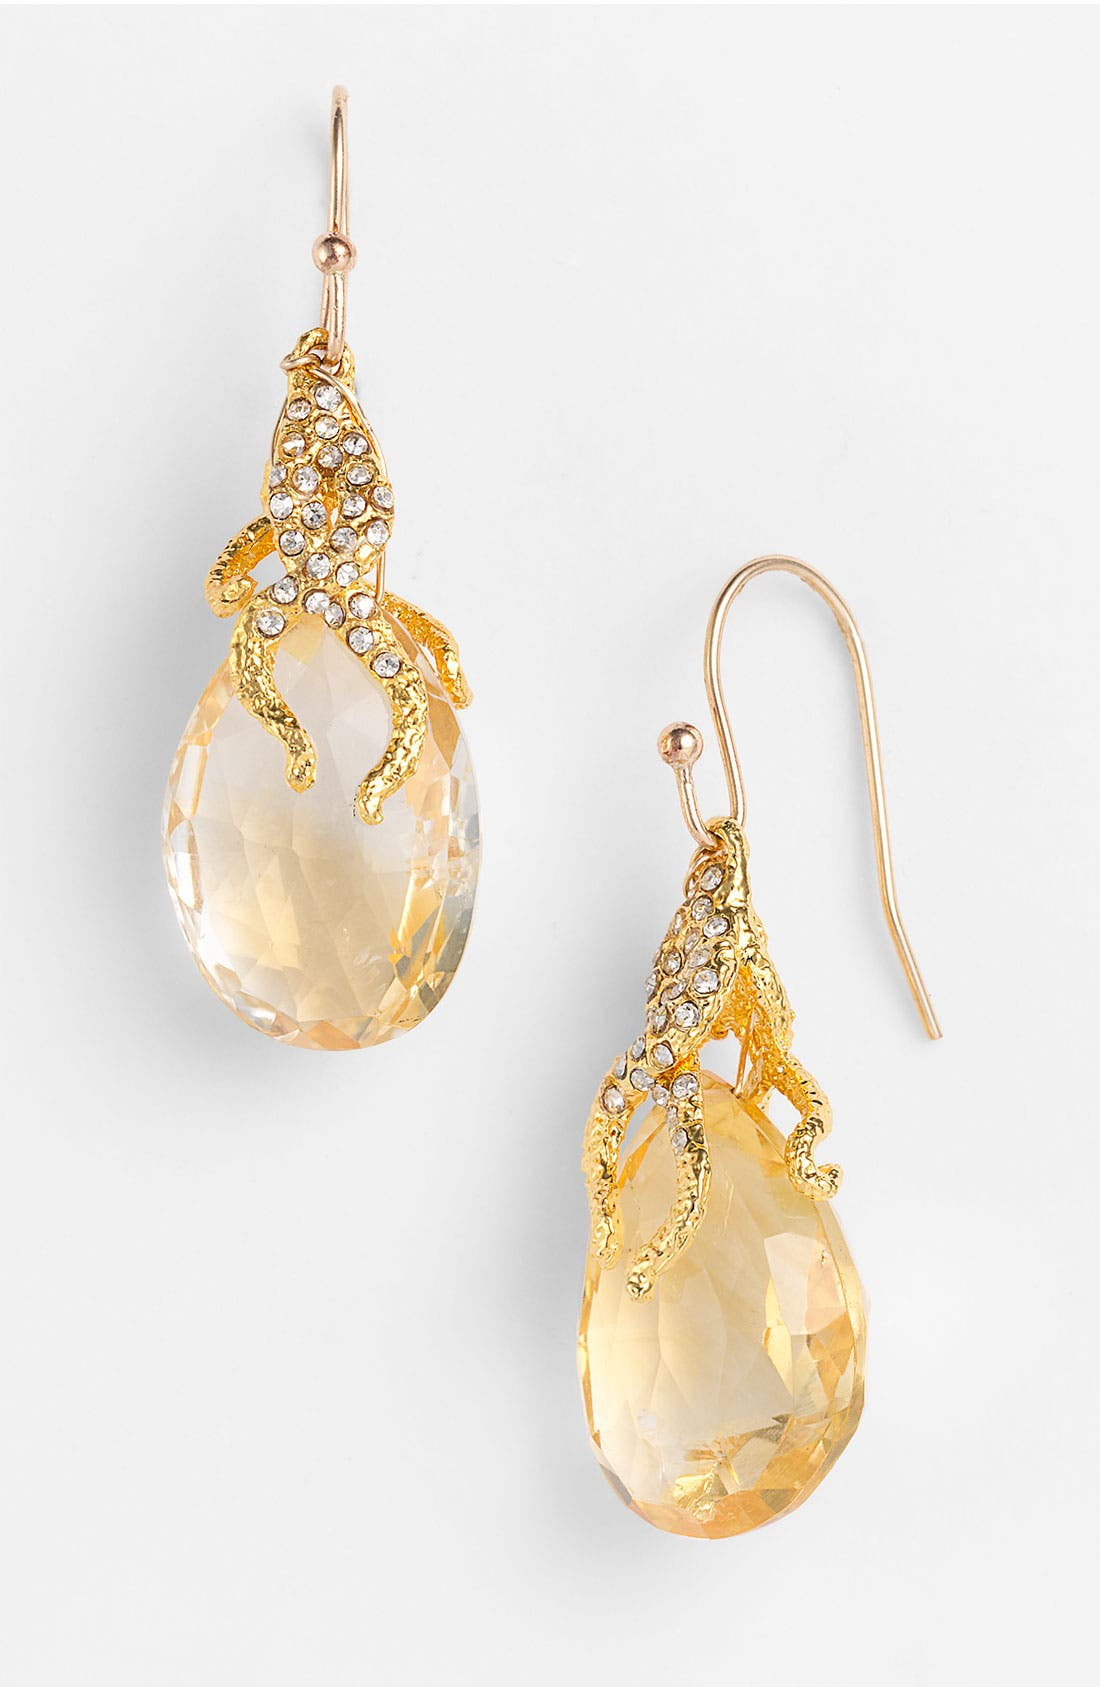 Alternate Image 1 Selected - Alexis Bittar 'Elements' Vine Capped Earrings (Nordstrom Exclusive)